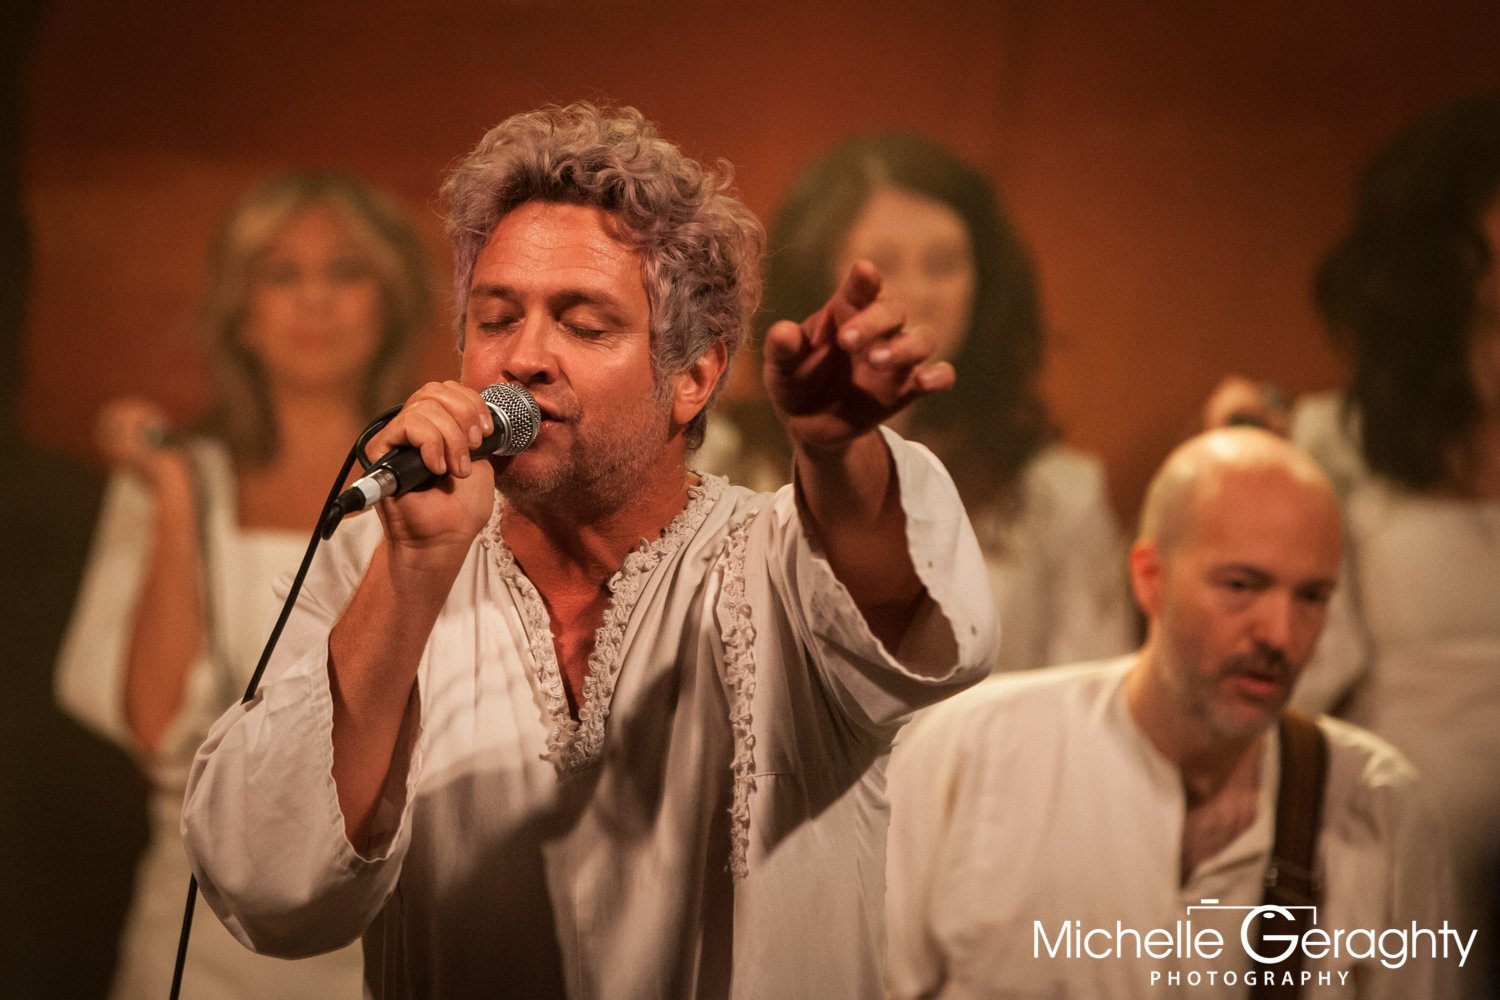 The Polyphonic Spree at The Academy, Dublin